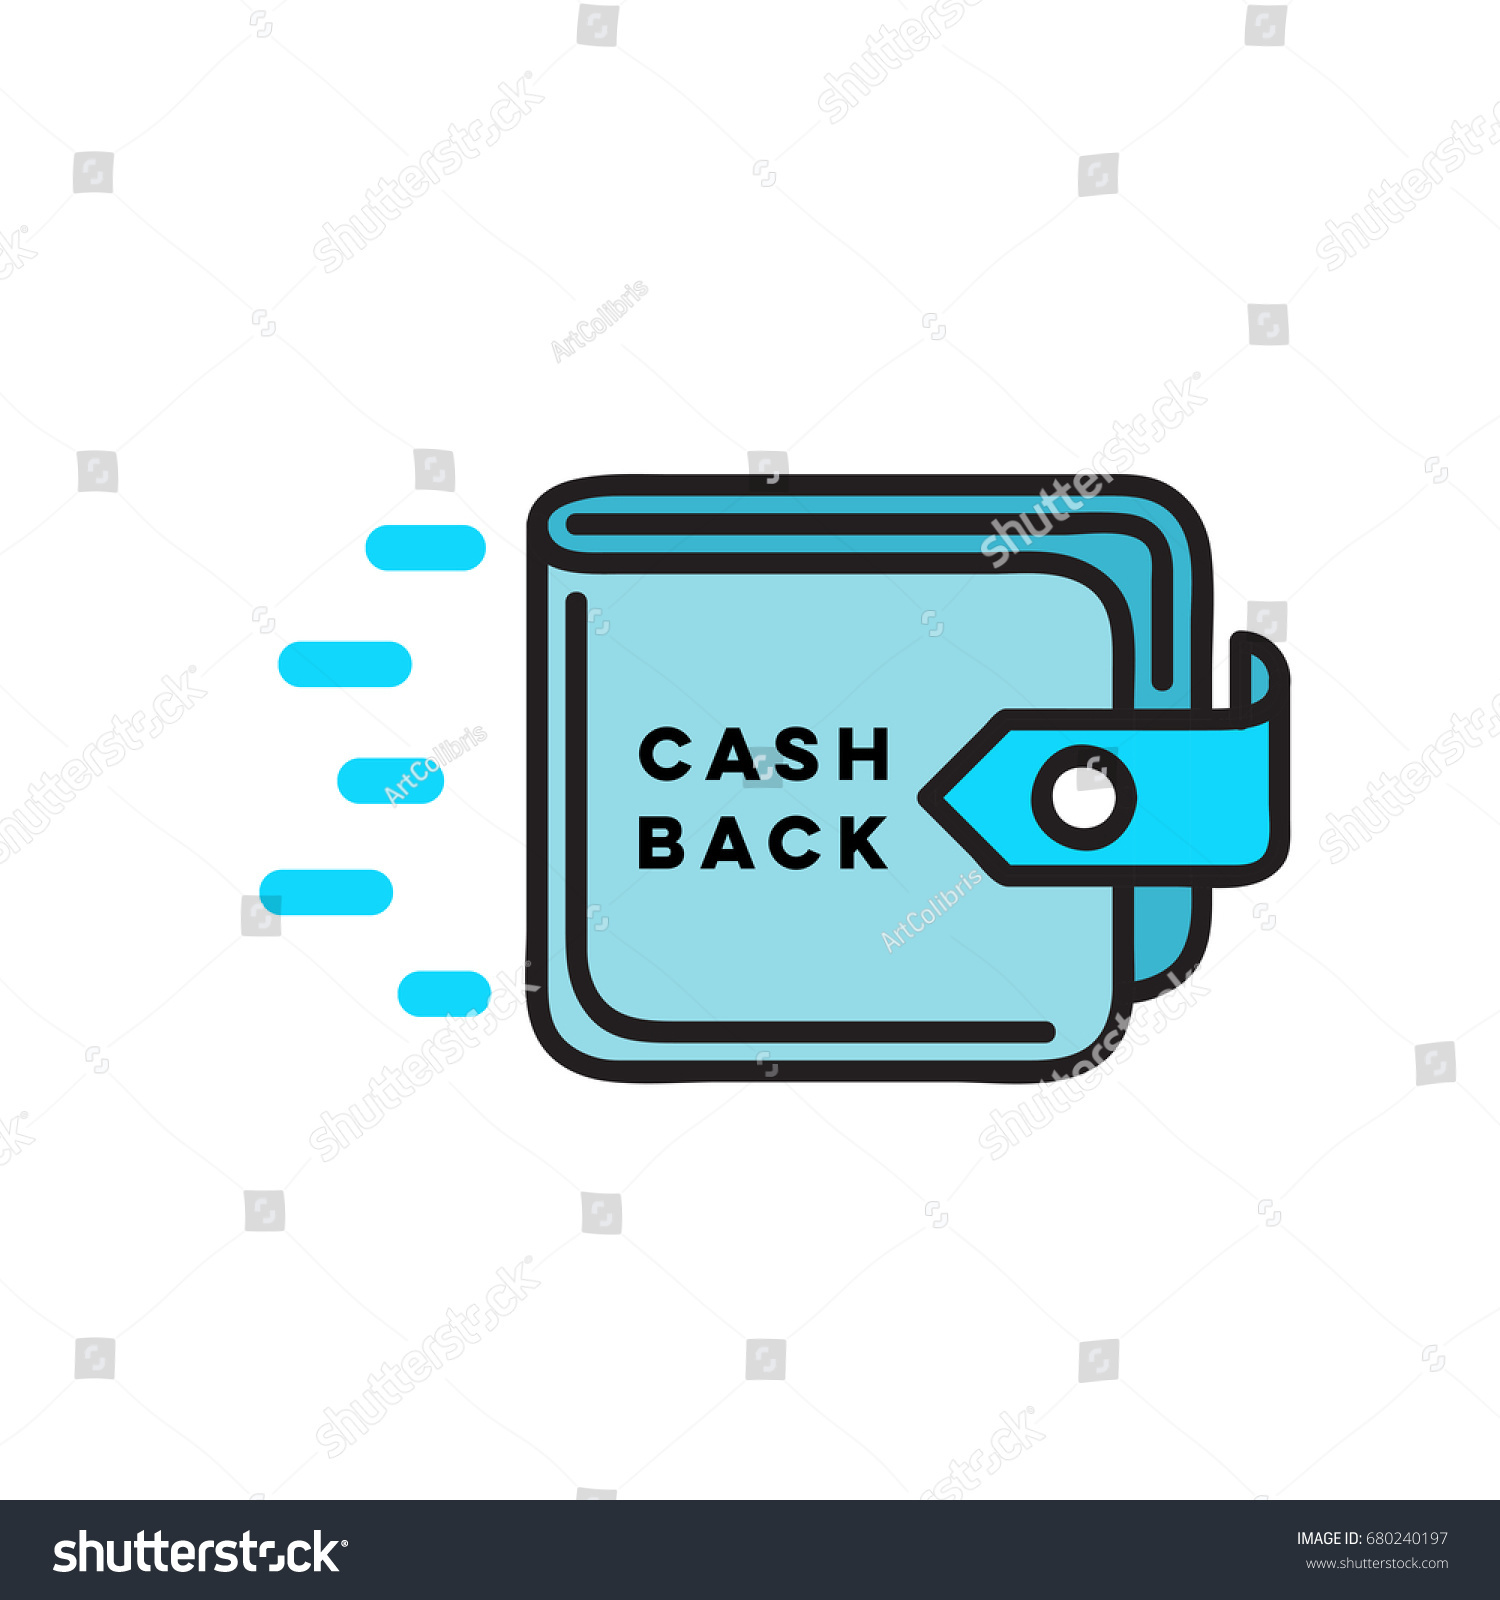 cash back flat linear wallet icon stock vector royalty free 680240197 https www shutterstock com image vector cash back flat linear wallet icon 680240197